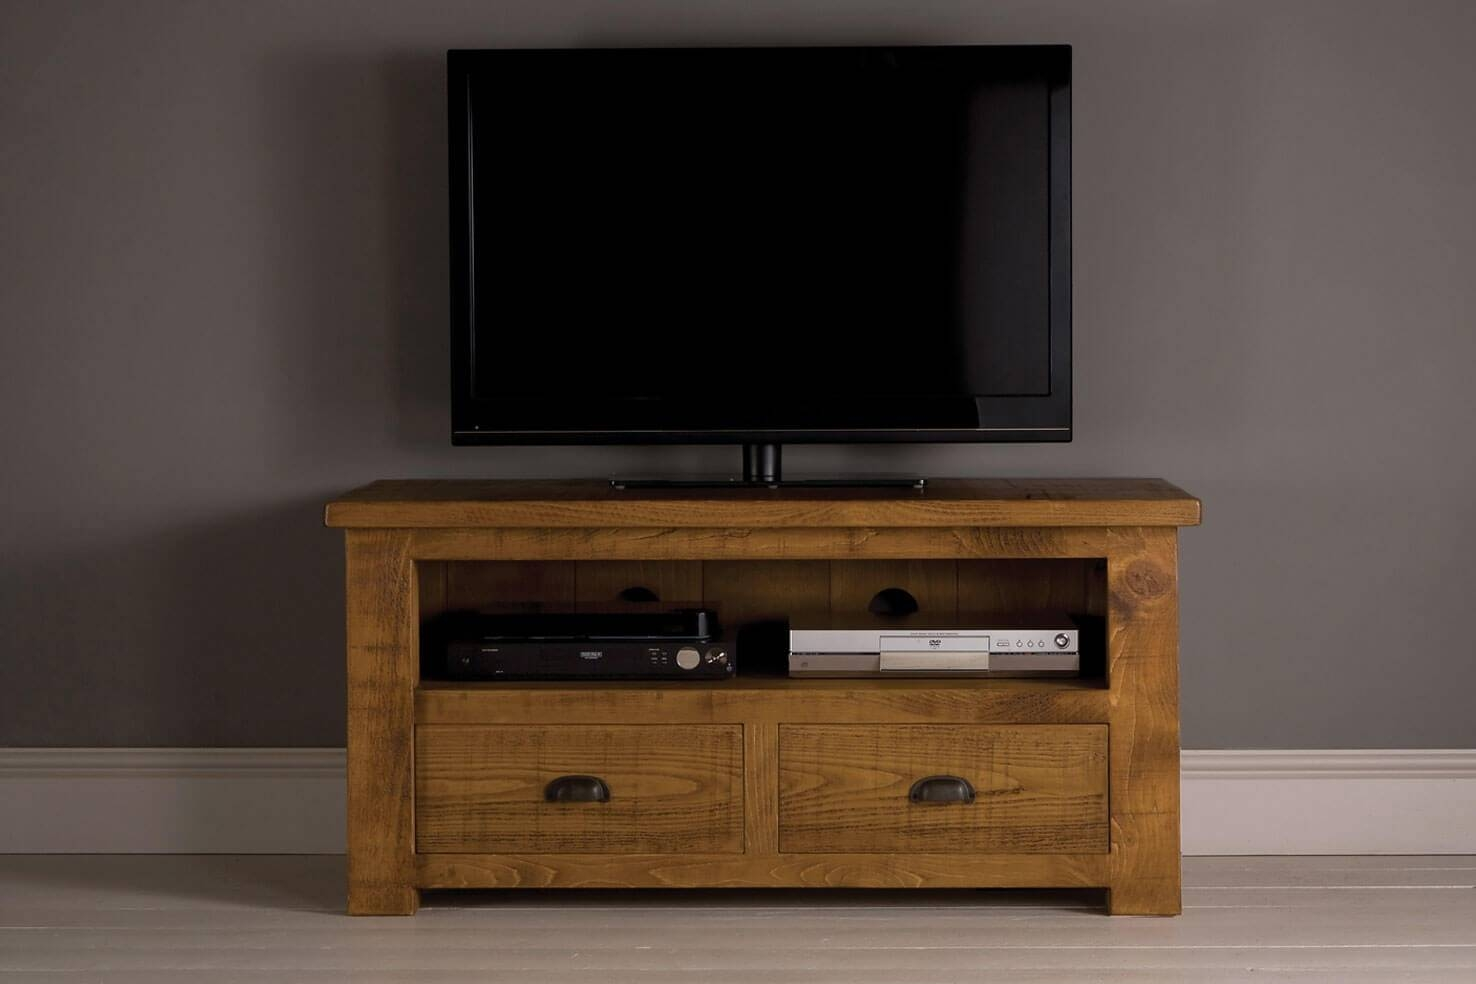 Grand Plank Tv Cabinet With Drawersindigo Furniture For Tv Cabinets (View 2 of 15)